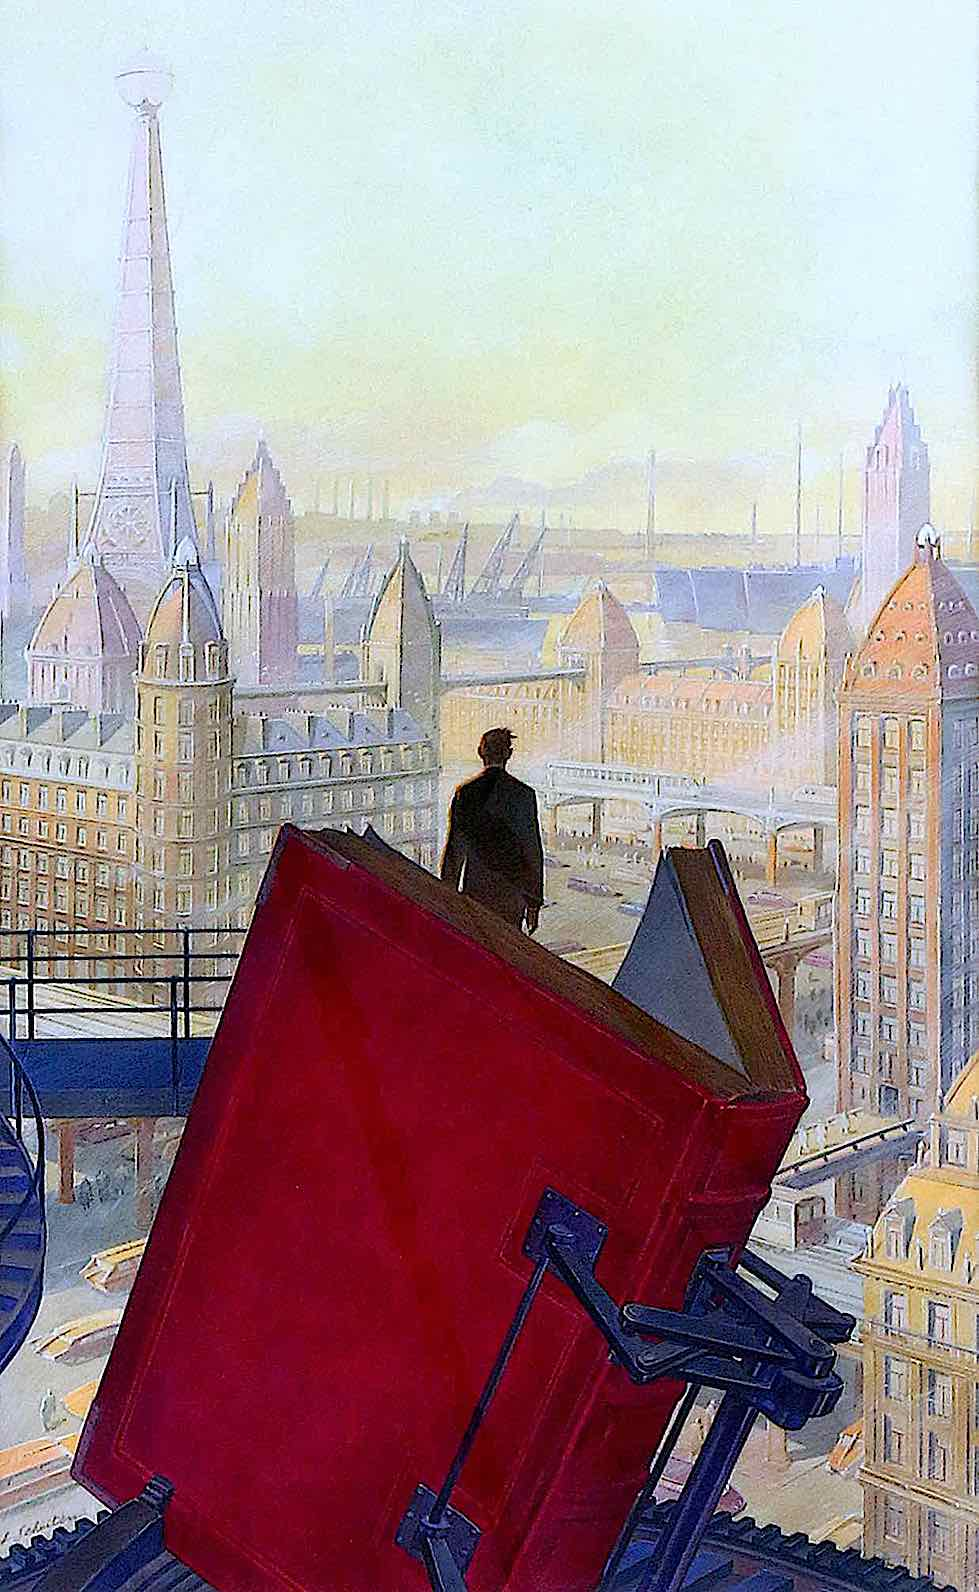 François Schuiten, a man looks out at a city from a giant book